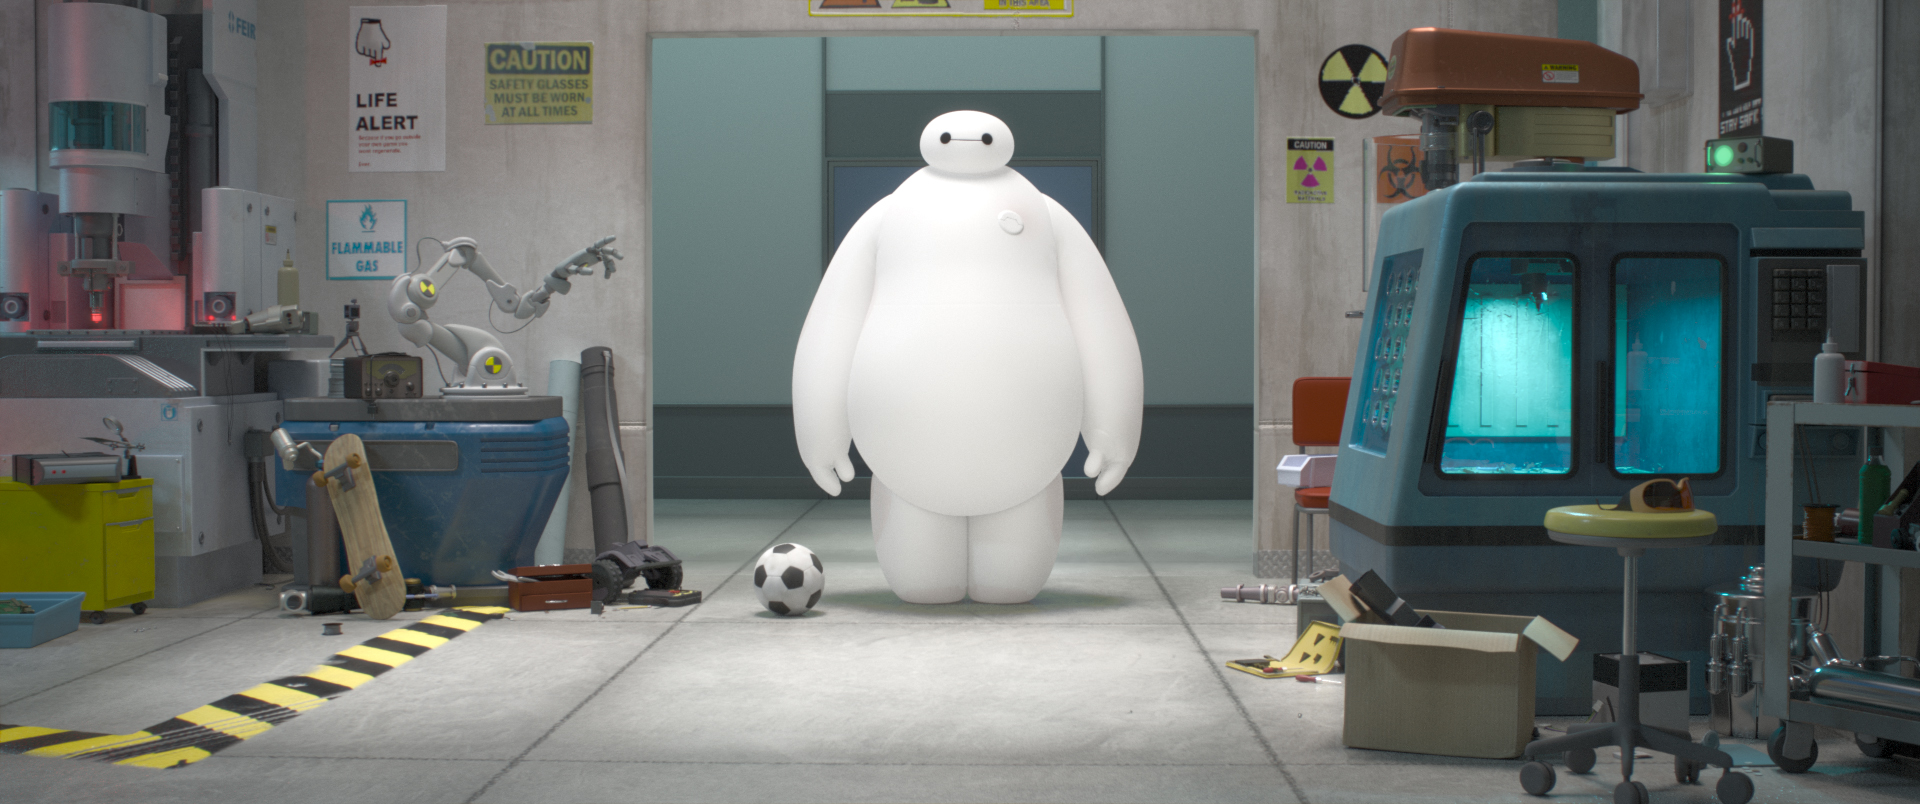 BIG HERO 6. Photo Courtesy of Disney.